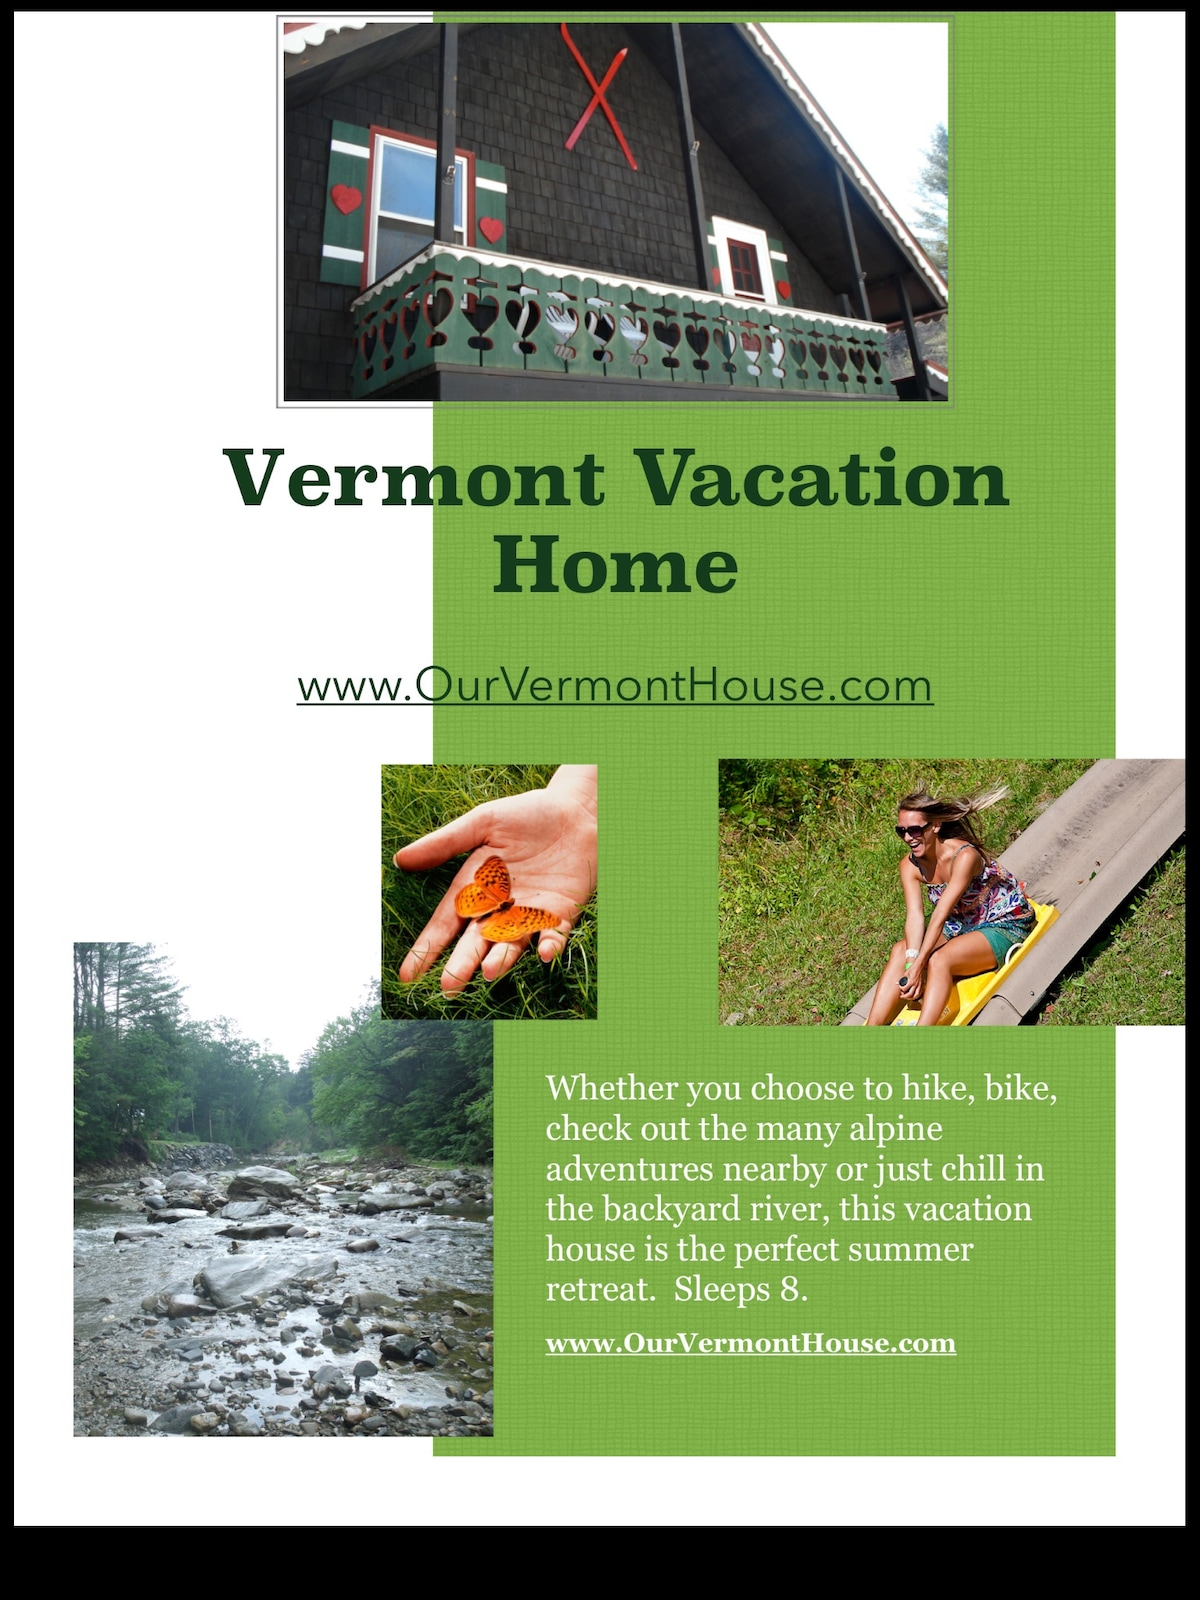 Vermont vacation retreat on river